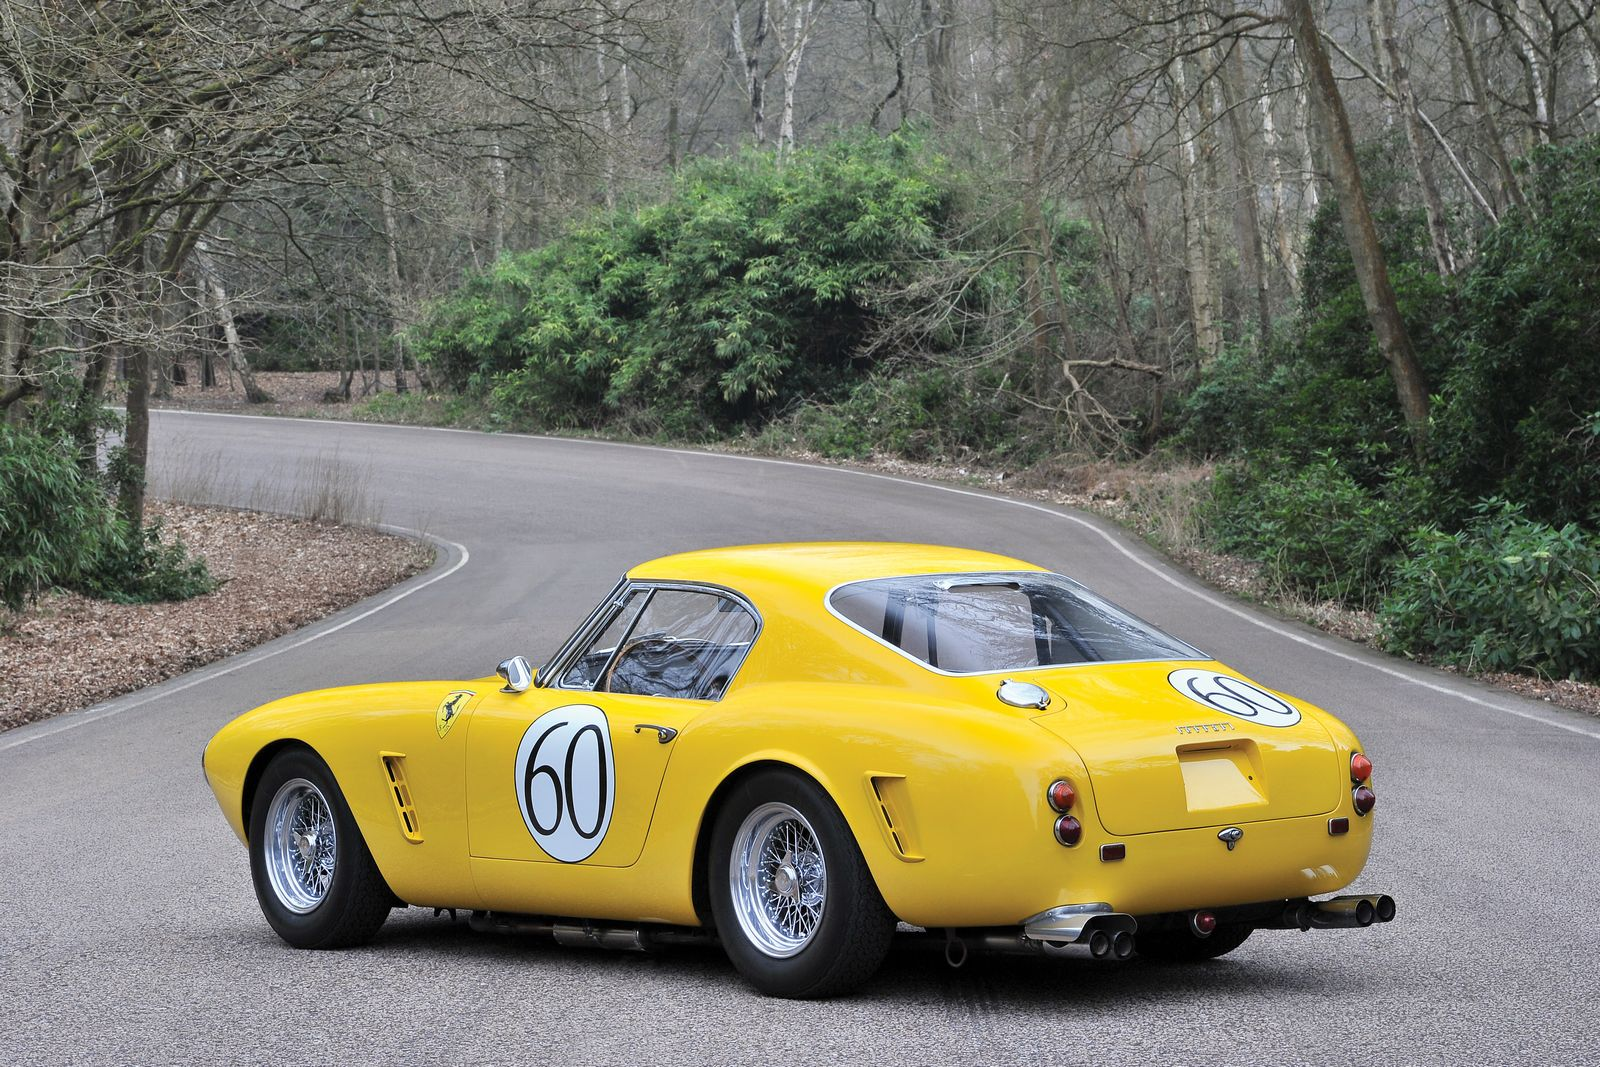 rare 1960 ferrari 250 gt swb berlinetta competizione going to auction gtspirit. Black Bedroom Furniture Sets. Home Design Ideas